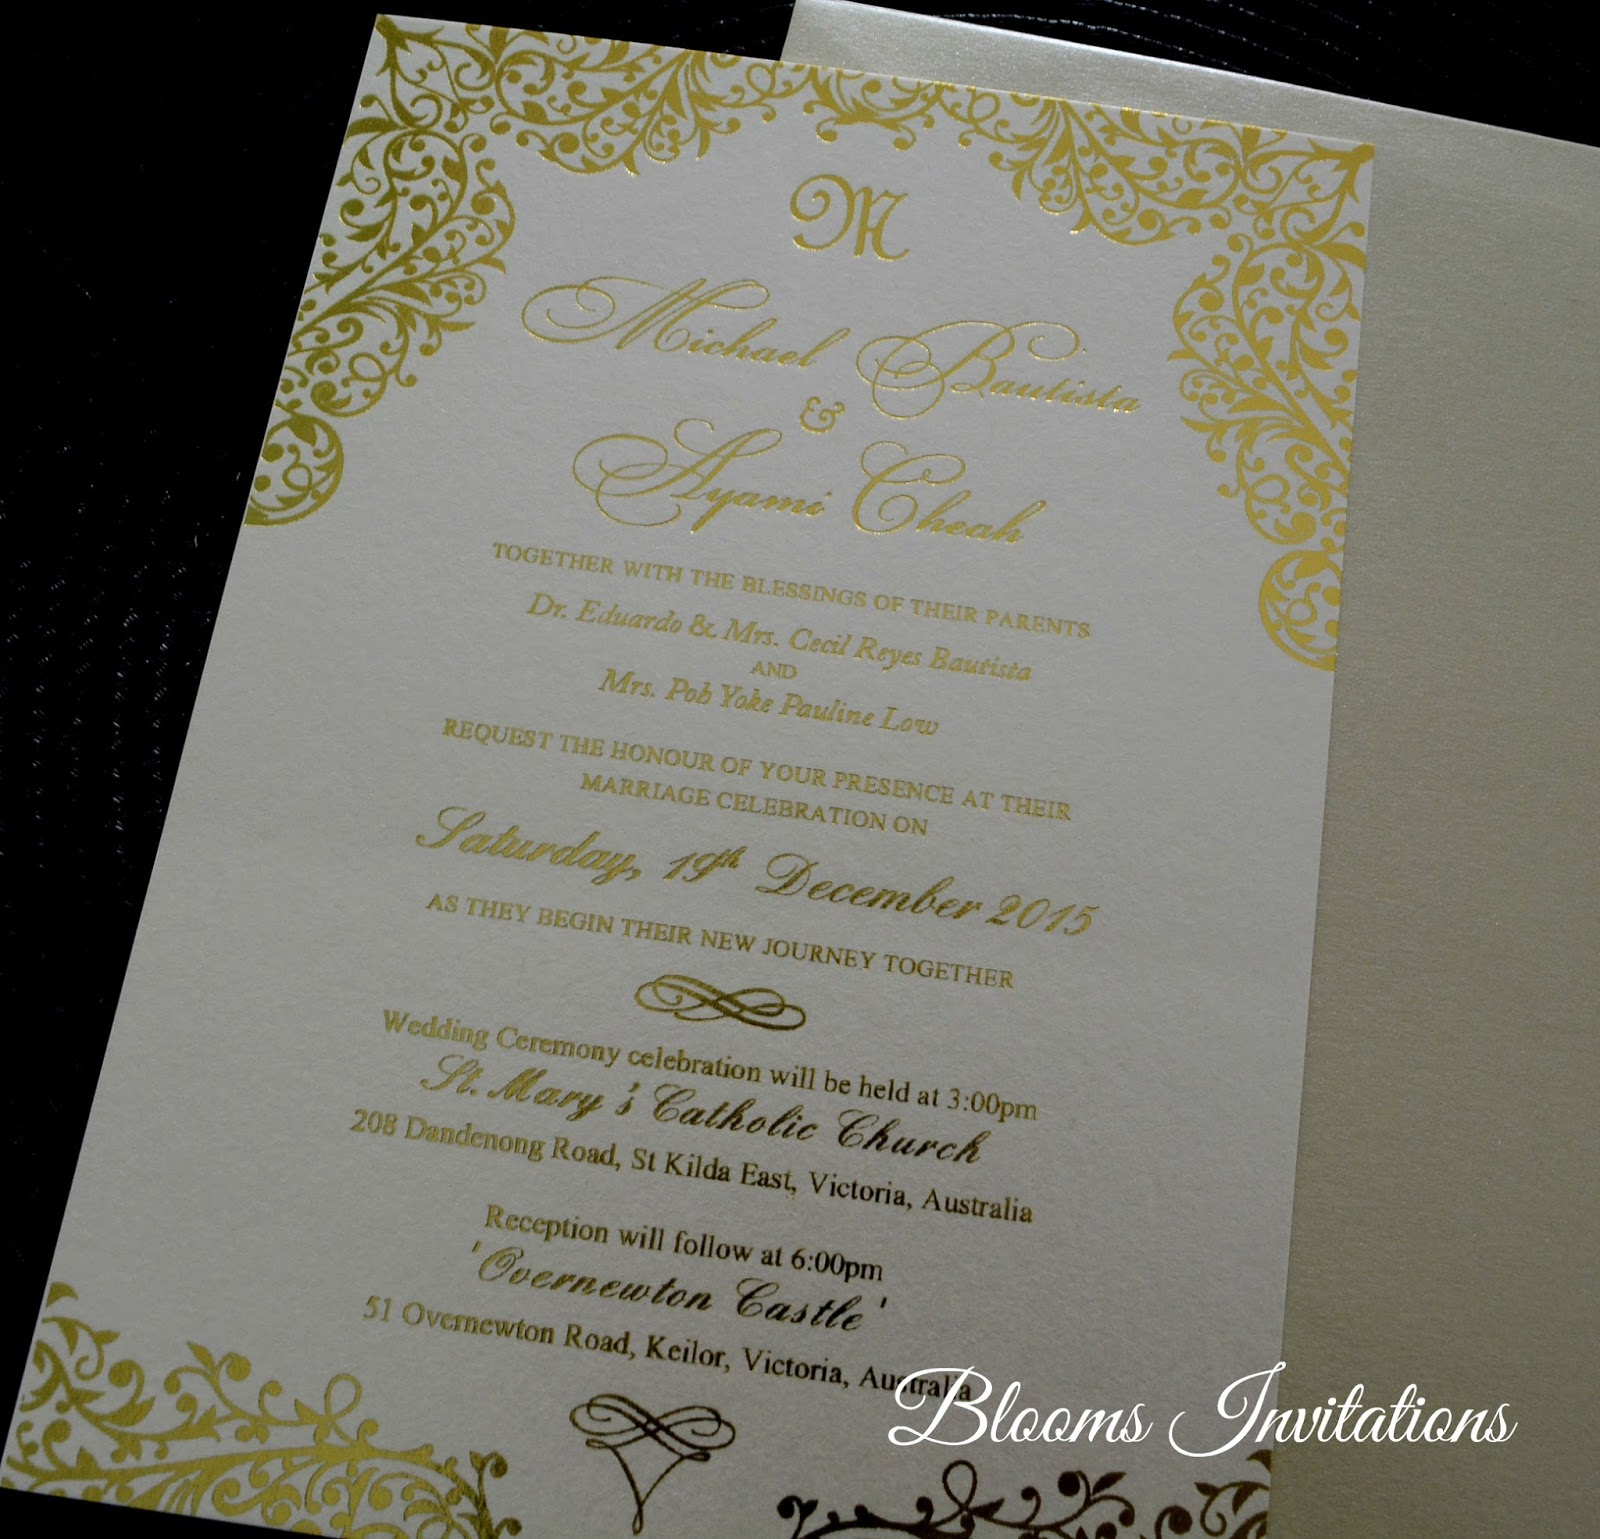 how to word evening wedding reception invitations%0A wedding invitation card wording in chinese malaysian chinese wedding  invitation wording wedding reception invitation card wordings